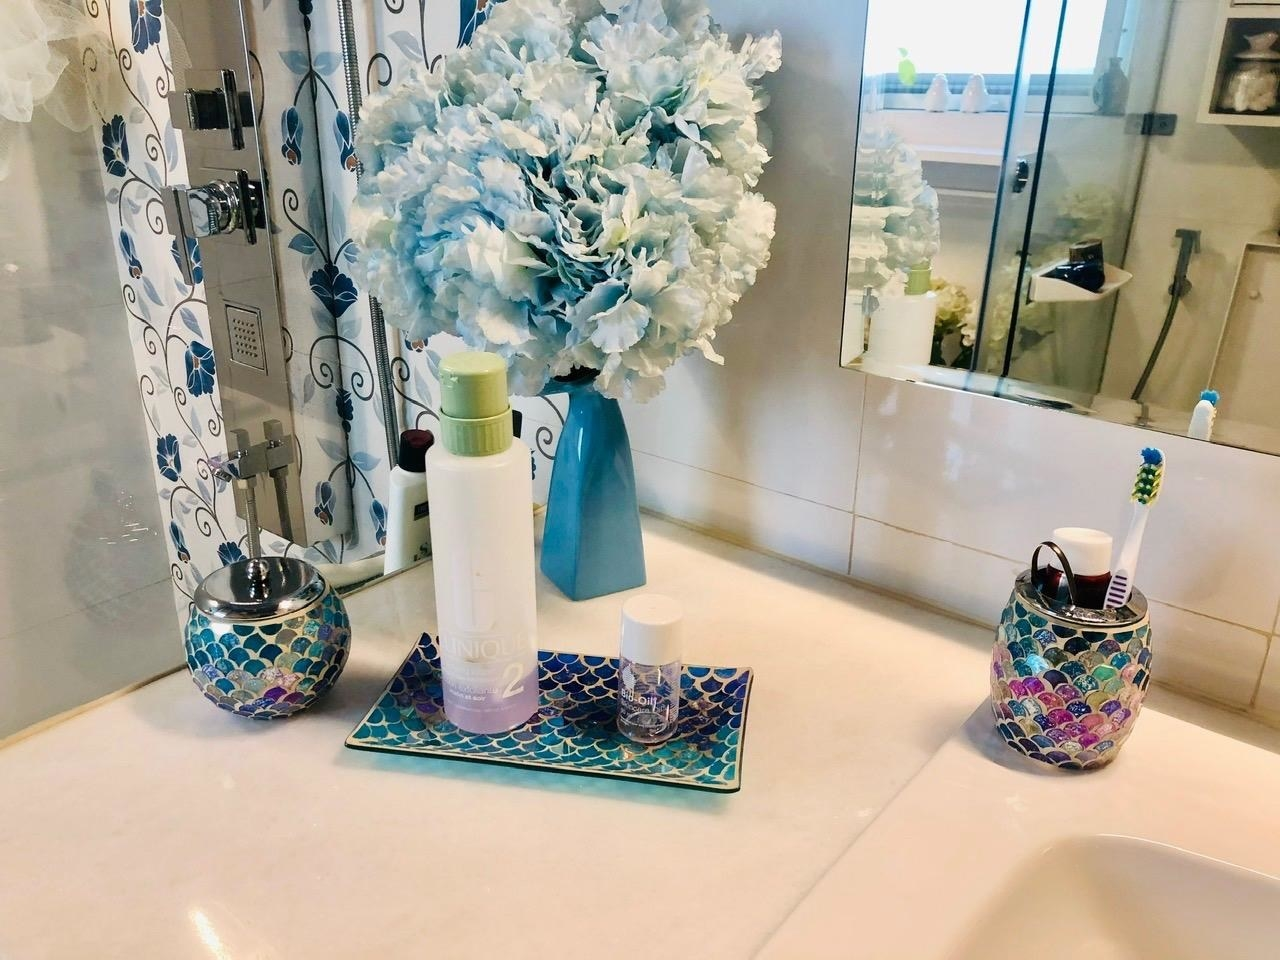 Reviewer's shimmery pink, blue, and green bathroom accessories set on a white counter